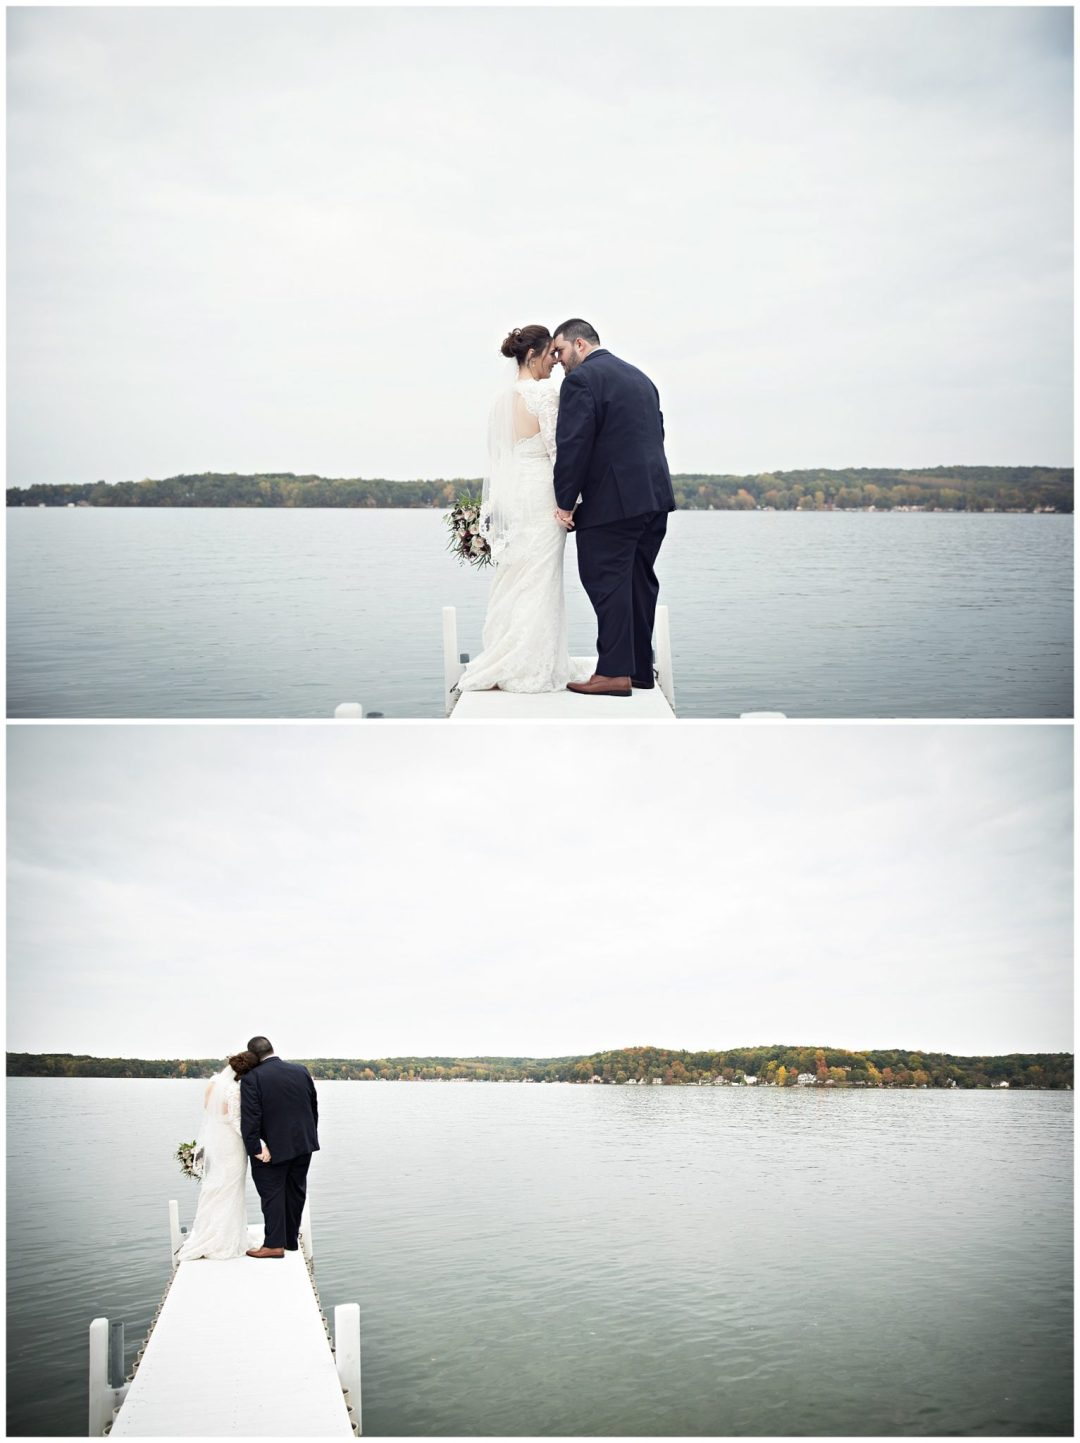 Bride and groom on the dock at Bay Pointe Inn on Gun Lake photographed by Melissa Gregersen Photography